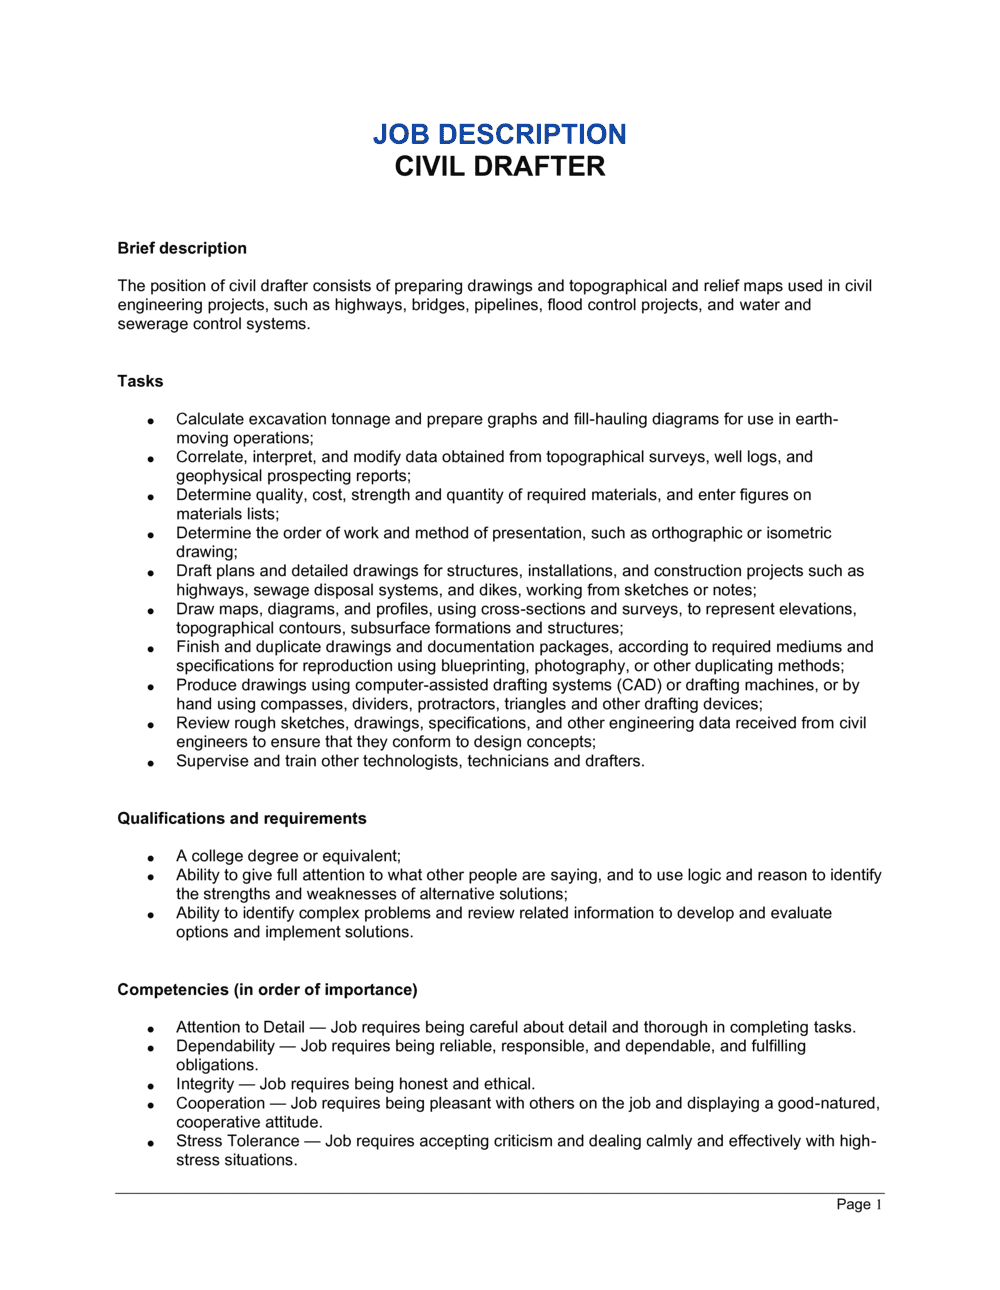 Business-in-a-Box's Civil Drafter Job Description Template